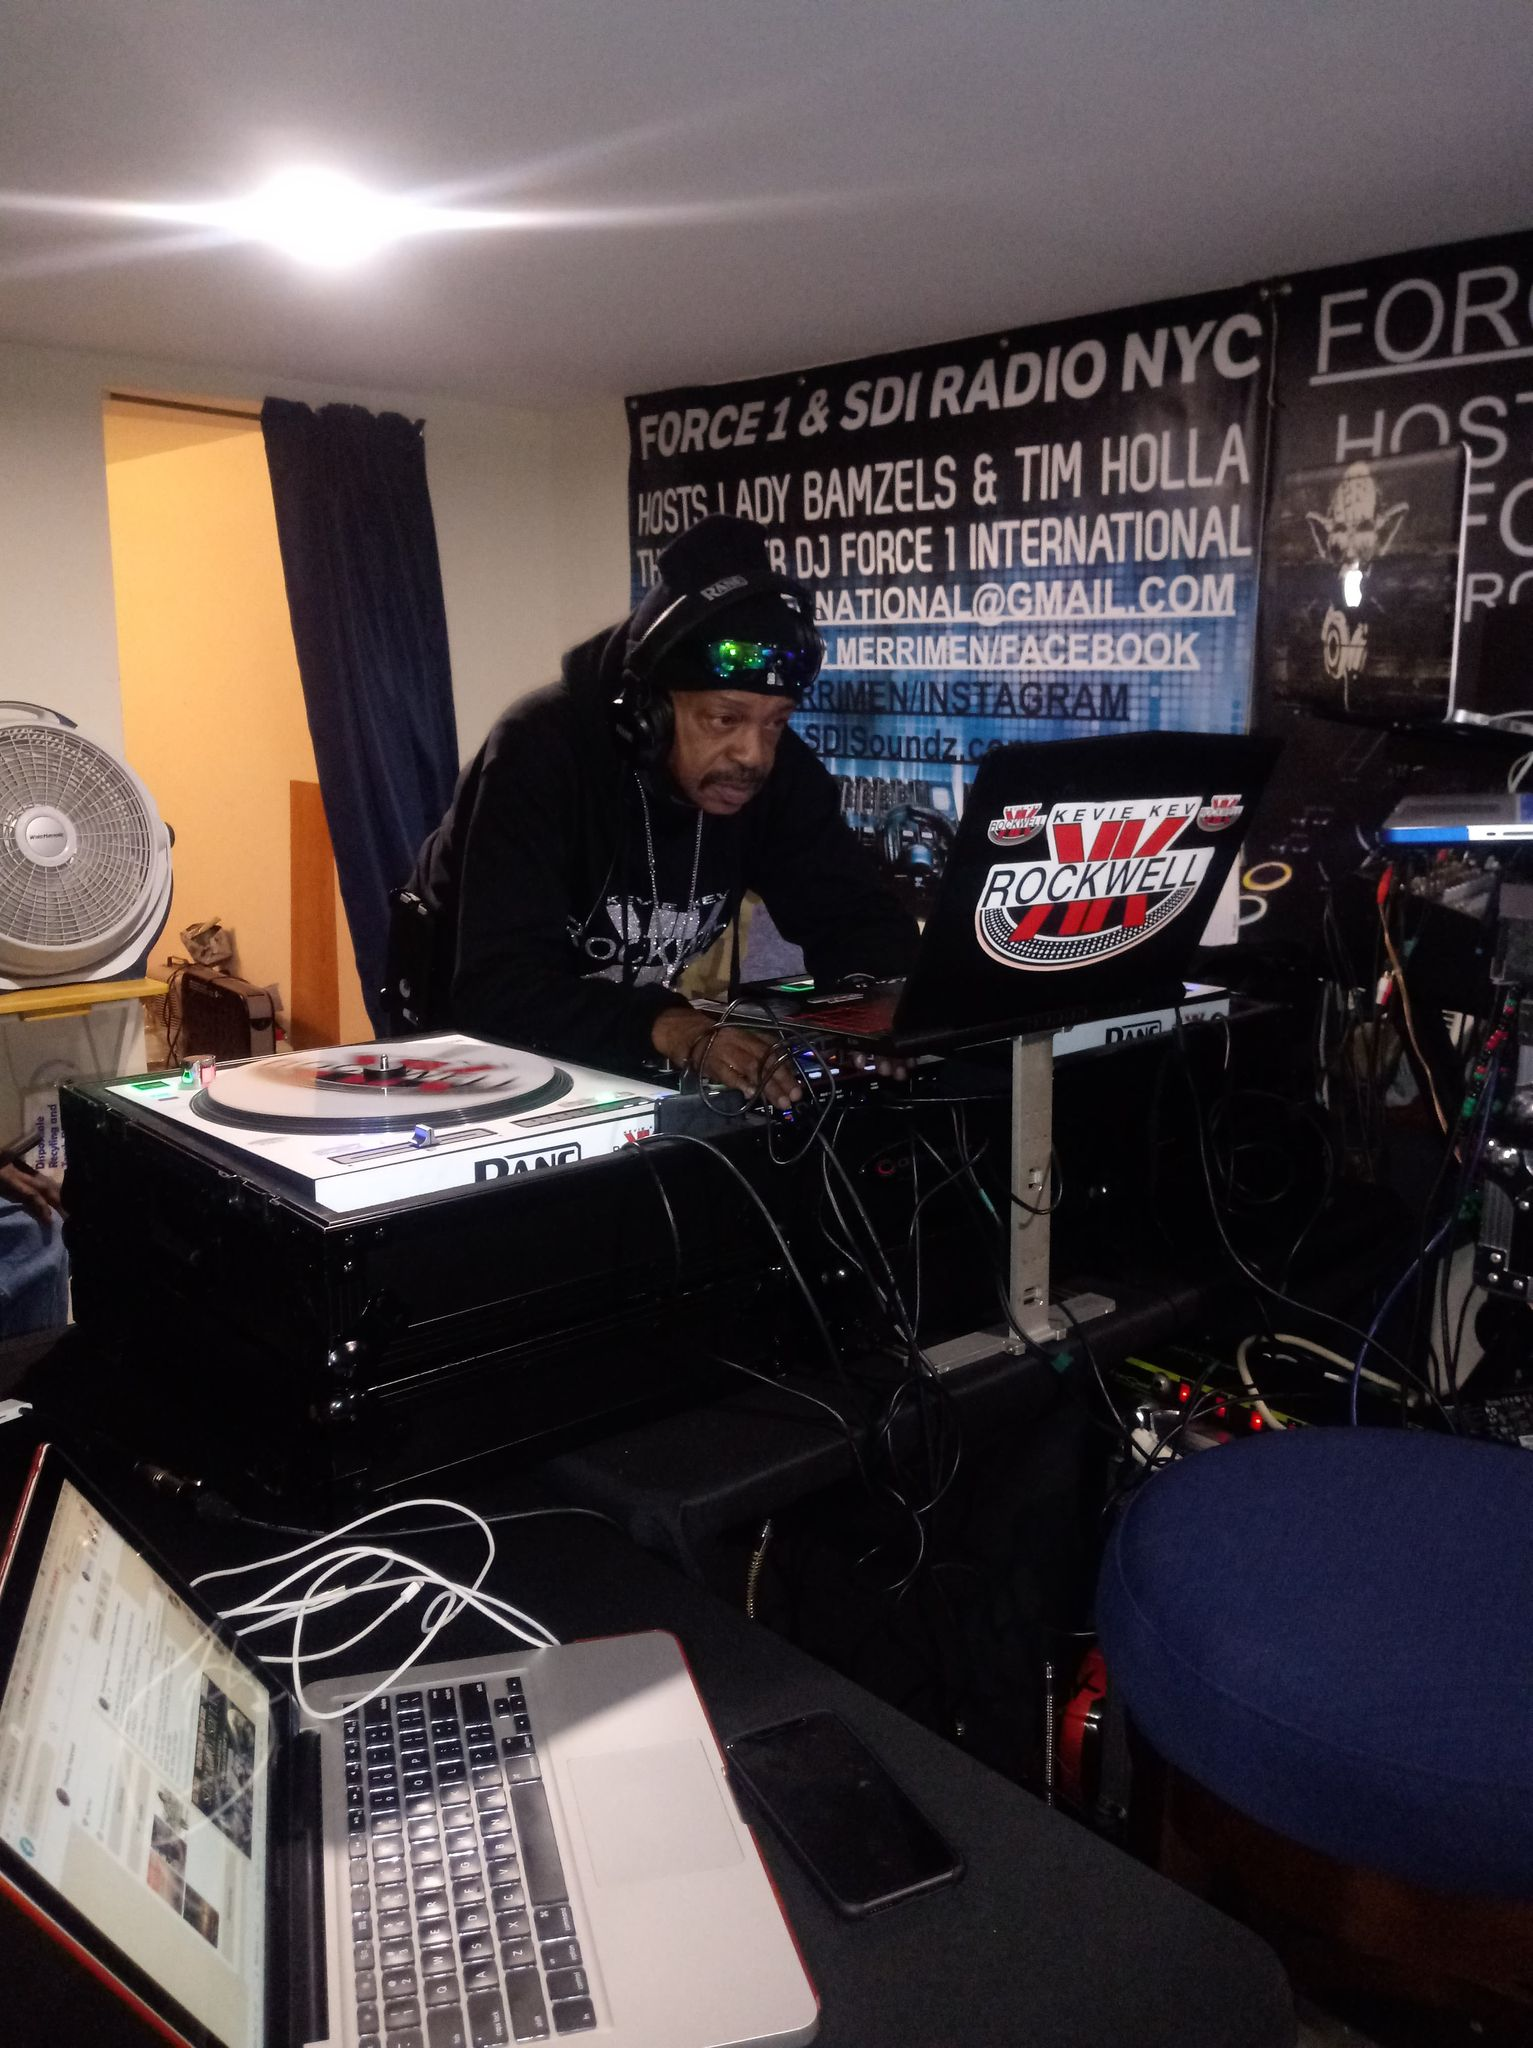 Rocking the 1s and 2s @ SDI Radio NYC, DJ  Kevie Kev